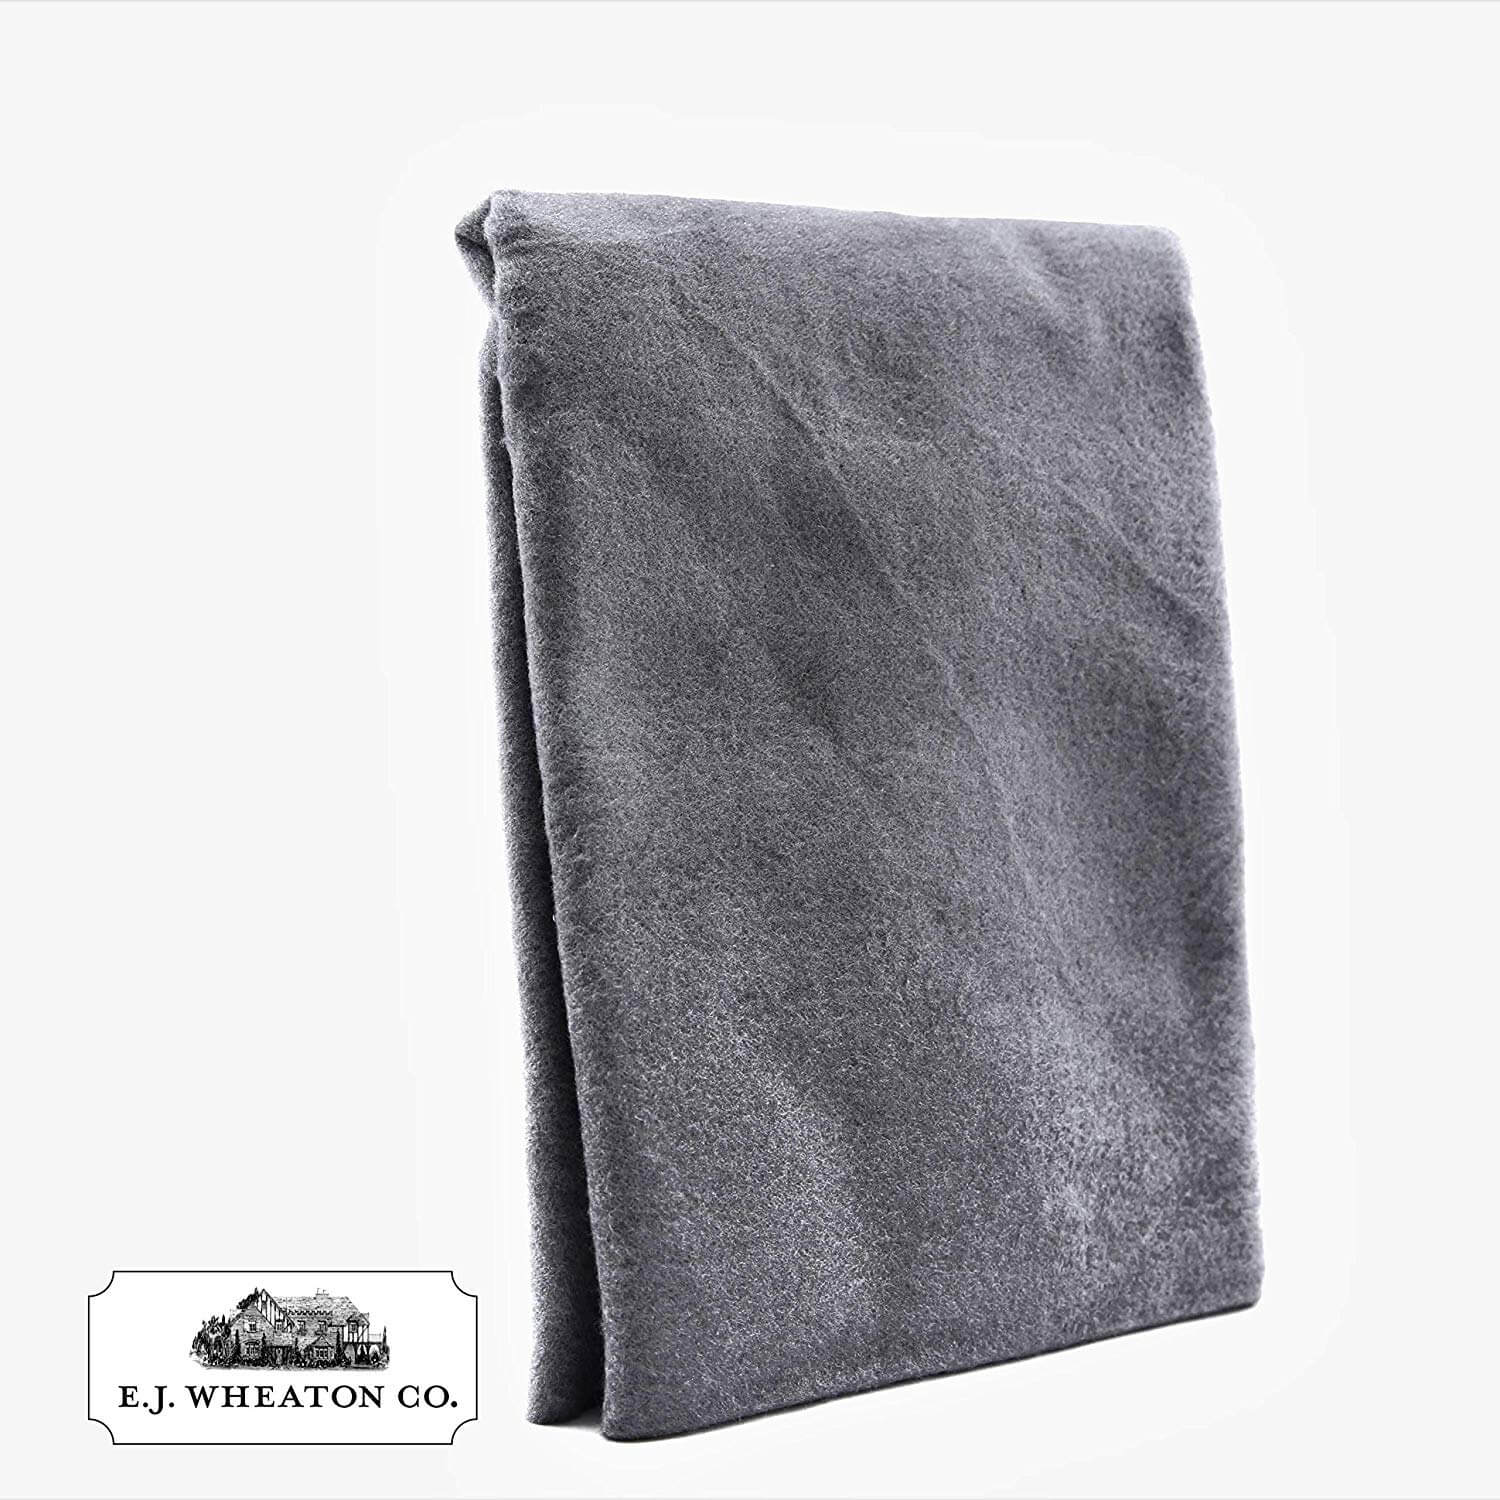 E.J. Wheaton Co. Dust and Done, Extra Large Pre Treated Dusting Cloth, Dust and Polish in Just One Swipe, for Use on Most Finished Surfaces, Made in USA (2 Cloths)